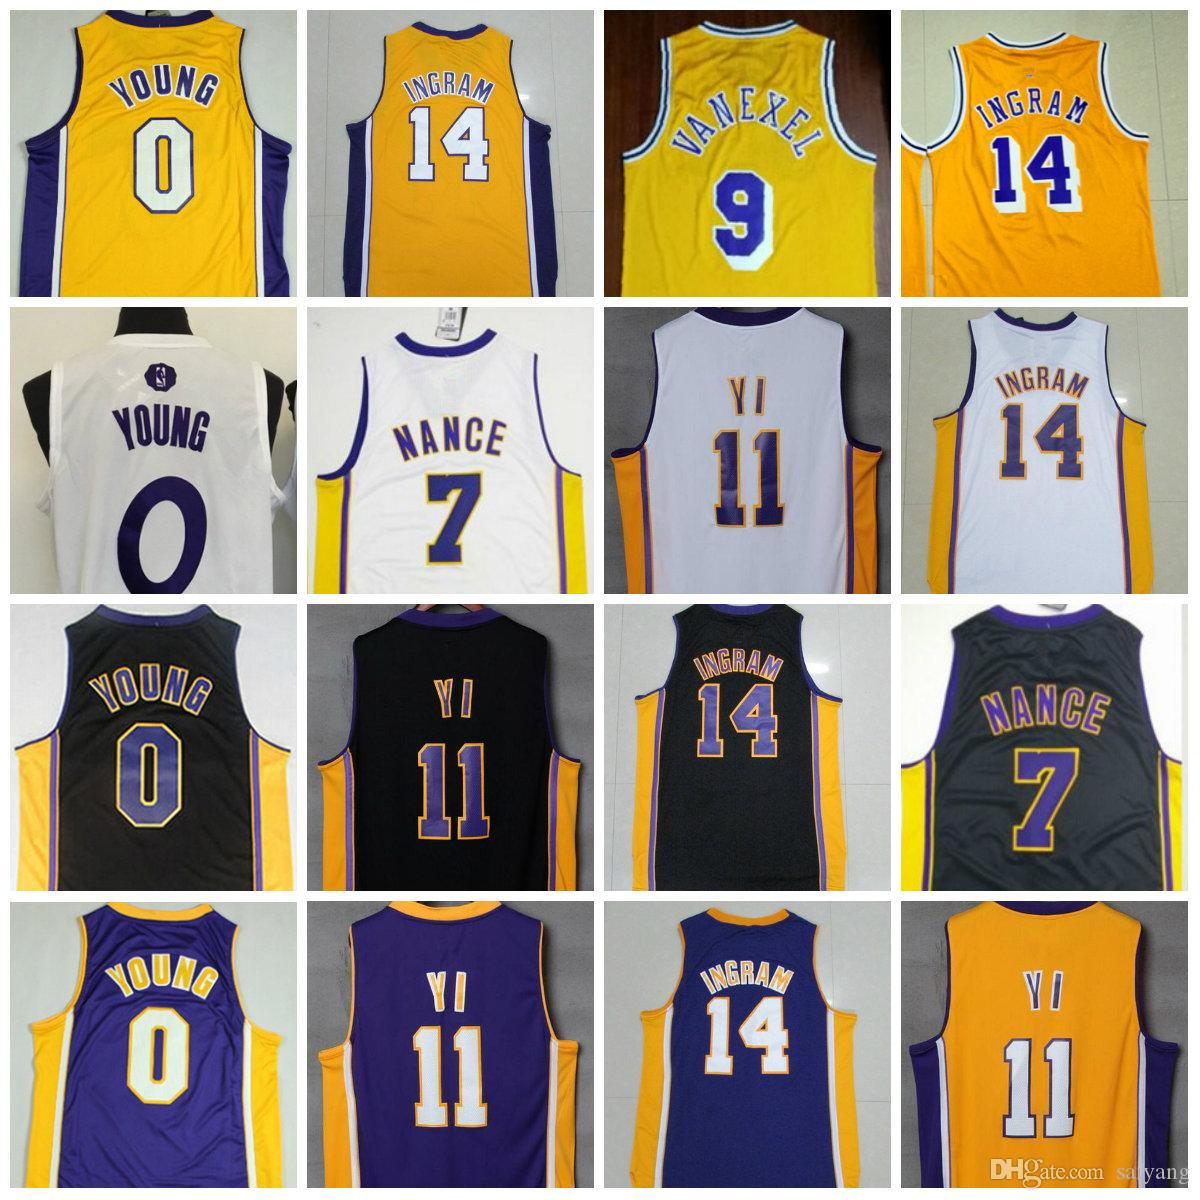 c9e71b656 ... 2017 Mens Throwback 14 Brandon Ingram 9 Nick Van Exel Jersey Yi  Hollywood 0 Nick Young ...